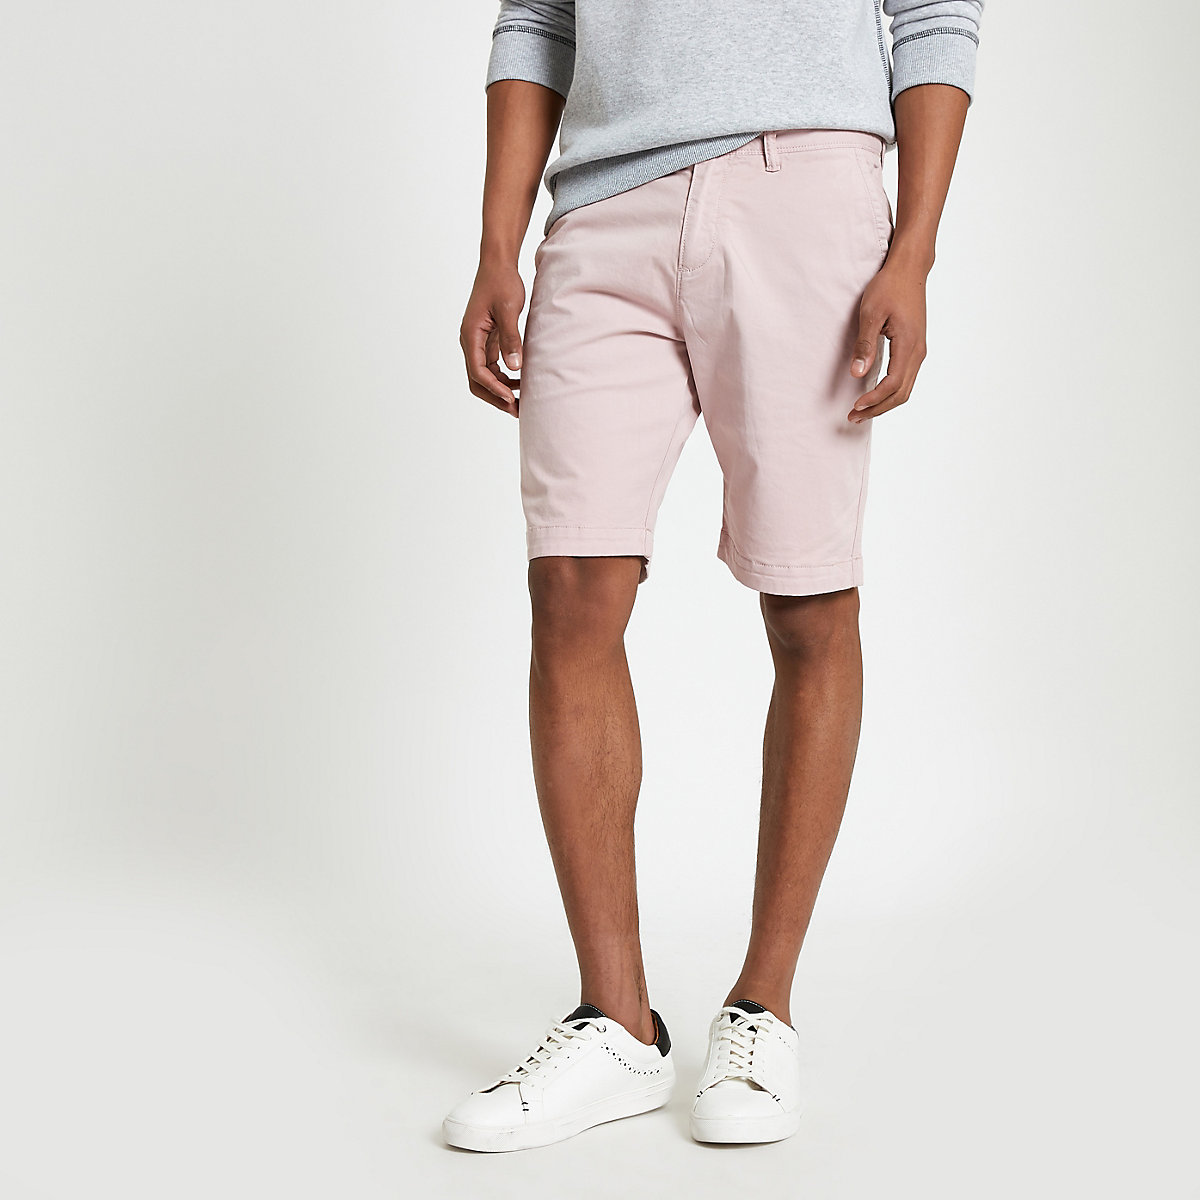 Superdry pink slim fit chino shorts